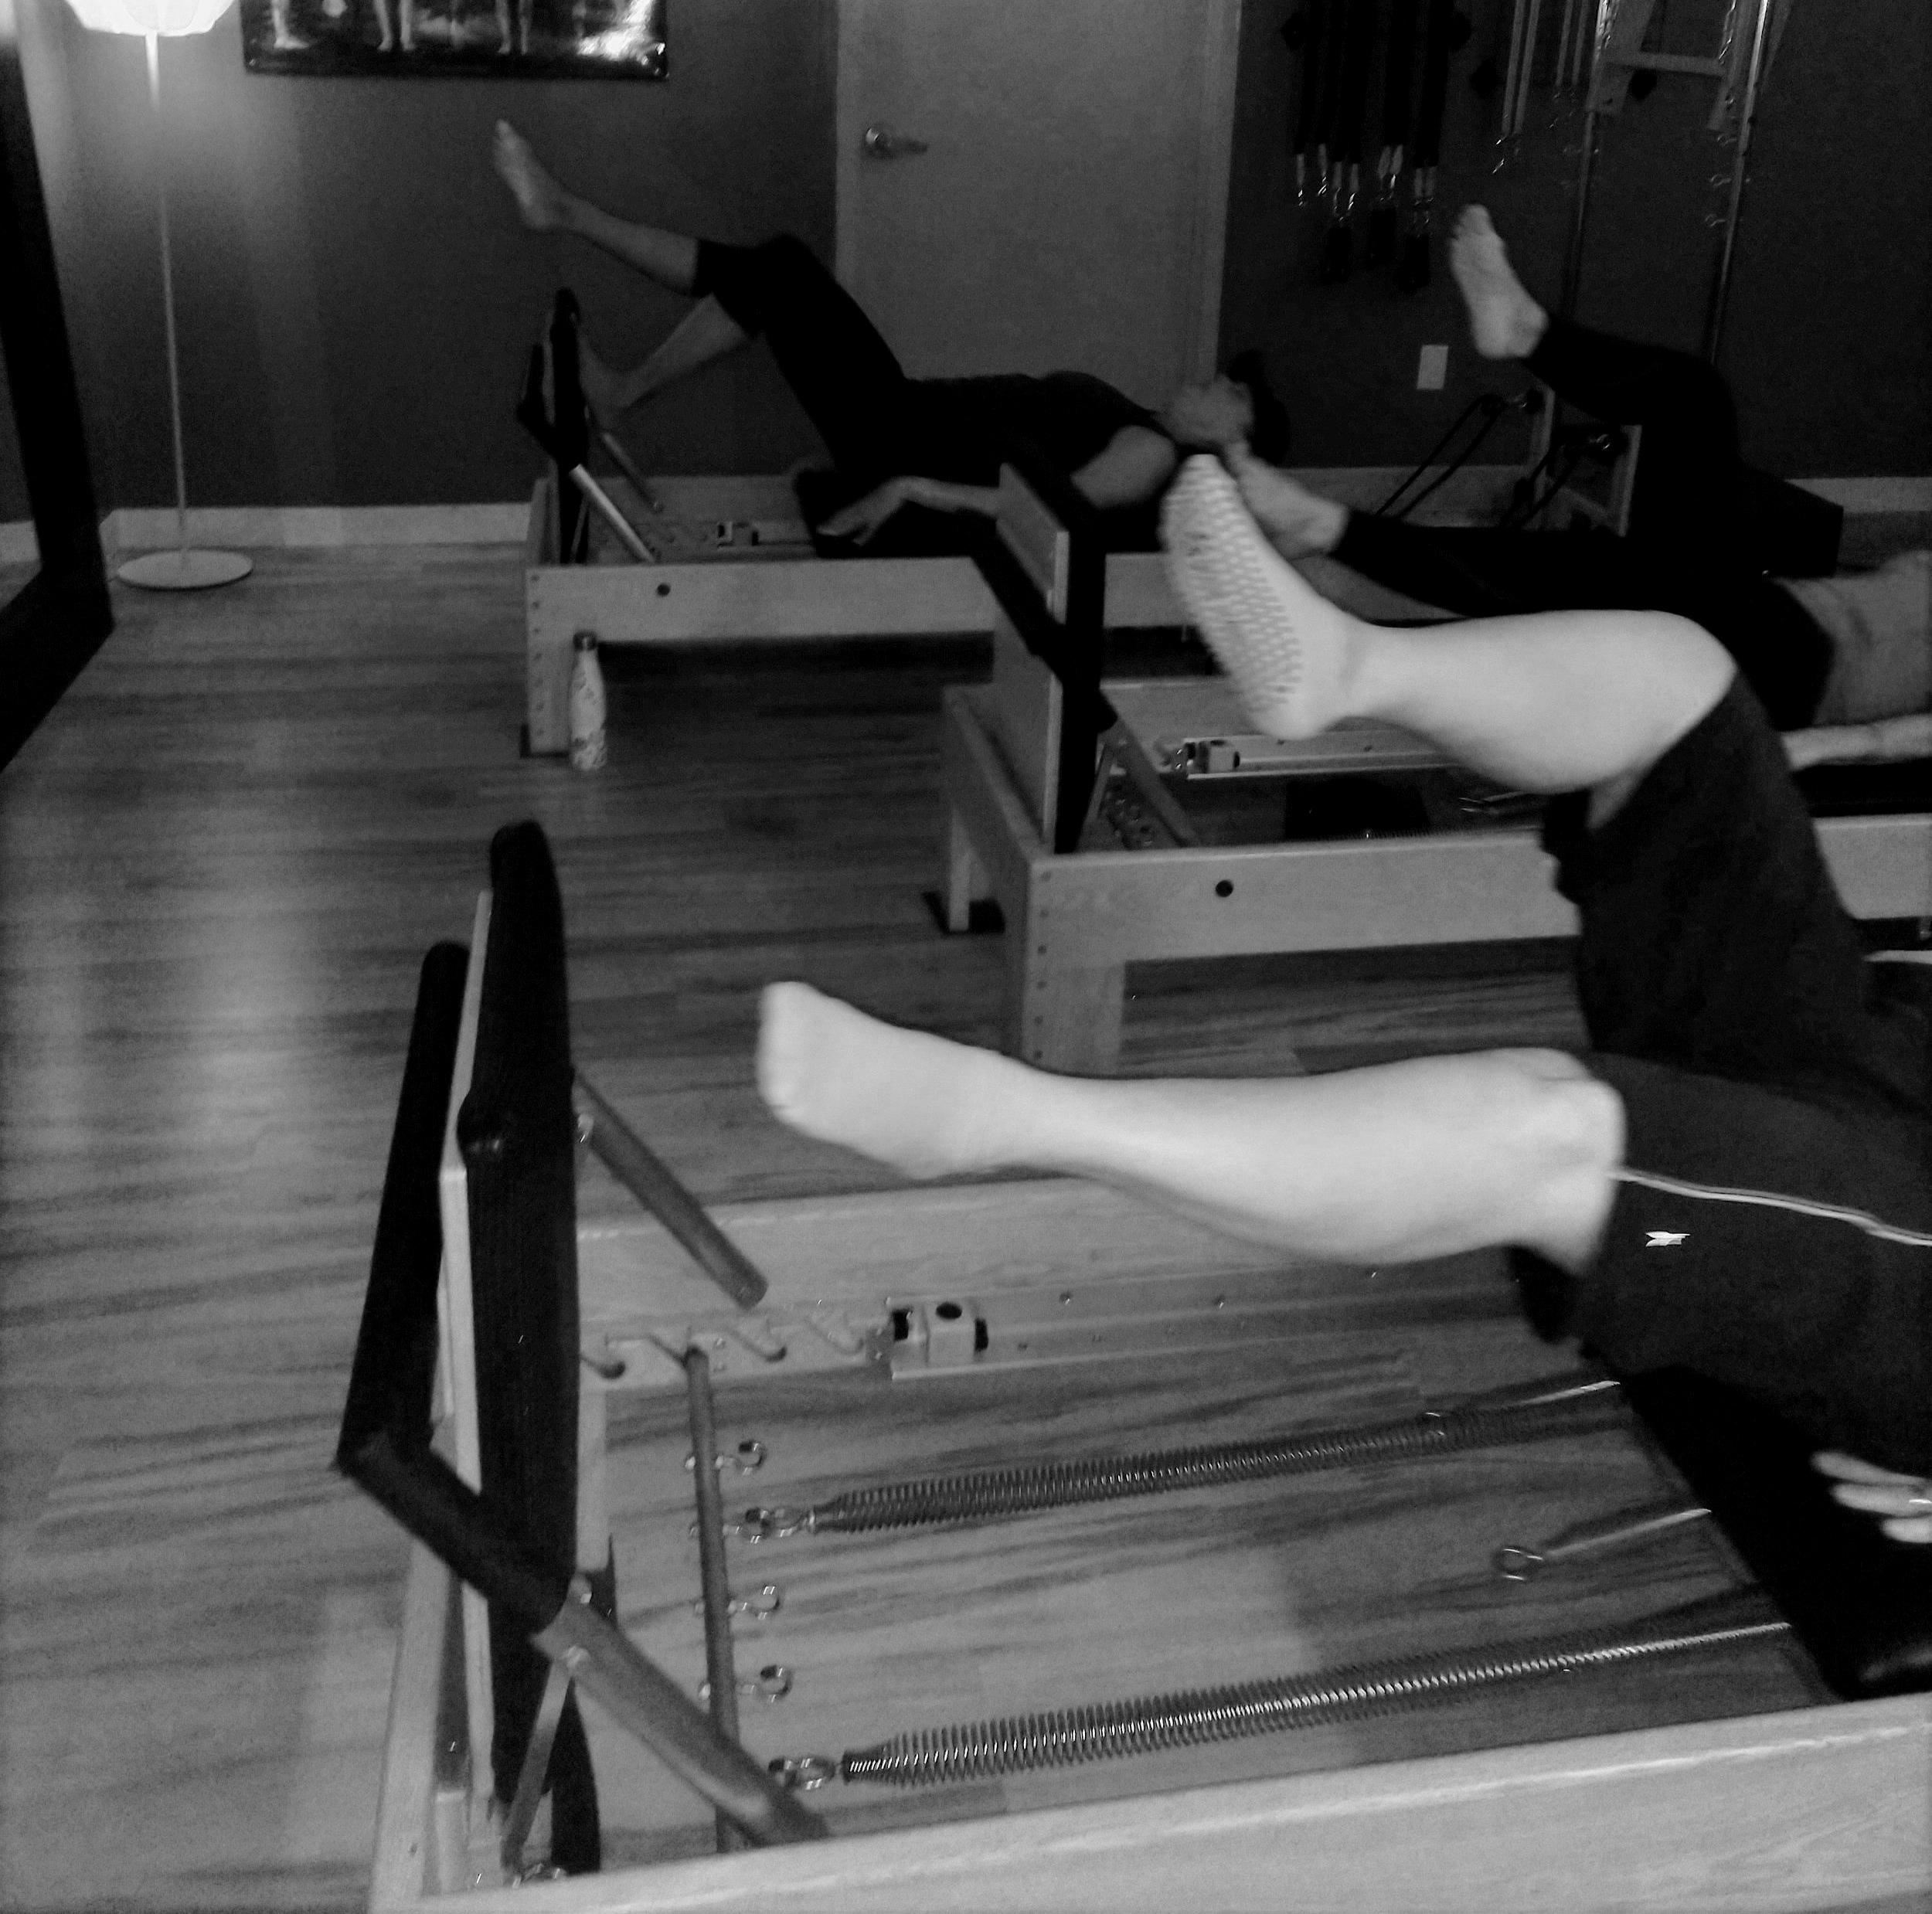 Cardio Reformer - This is a 45 Min HIT style class. Utilizing the Jumpboard to elevate the heart rate and burn mad calories. The way the Jumpboard is set up allows you to get cardio aerobic training with very little stress or impact on the joints. In between every jump session will be a body weight challenge, lunges, squats, abs, etc. Making this class a full body workout. Bring a towel and water, you will break a sweat!